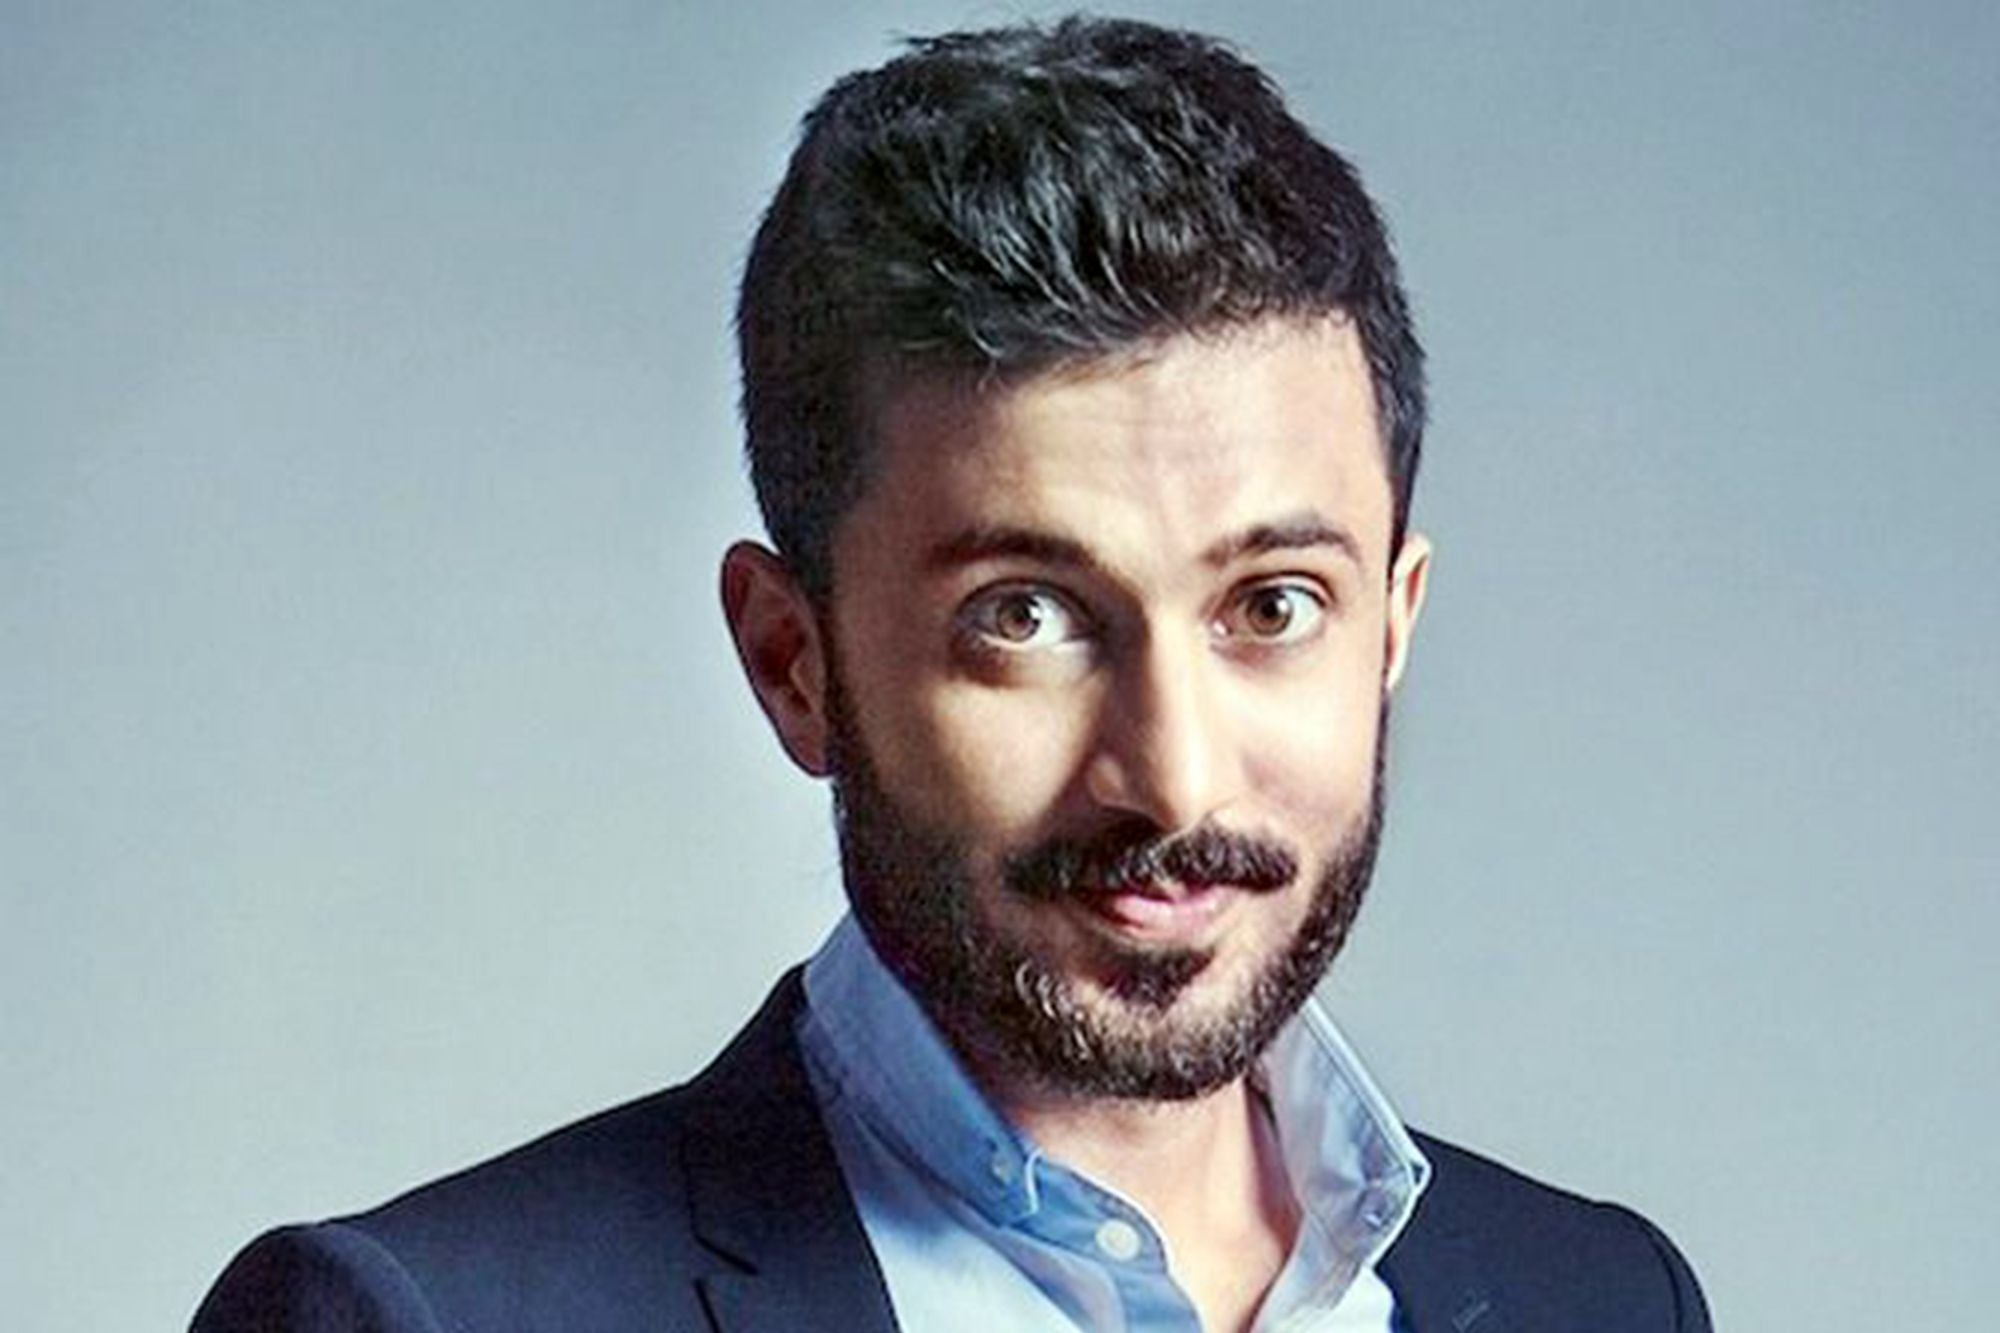 Anand Ahuja Among Top 5 Personalities Most Searched on